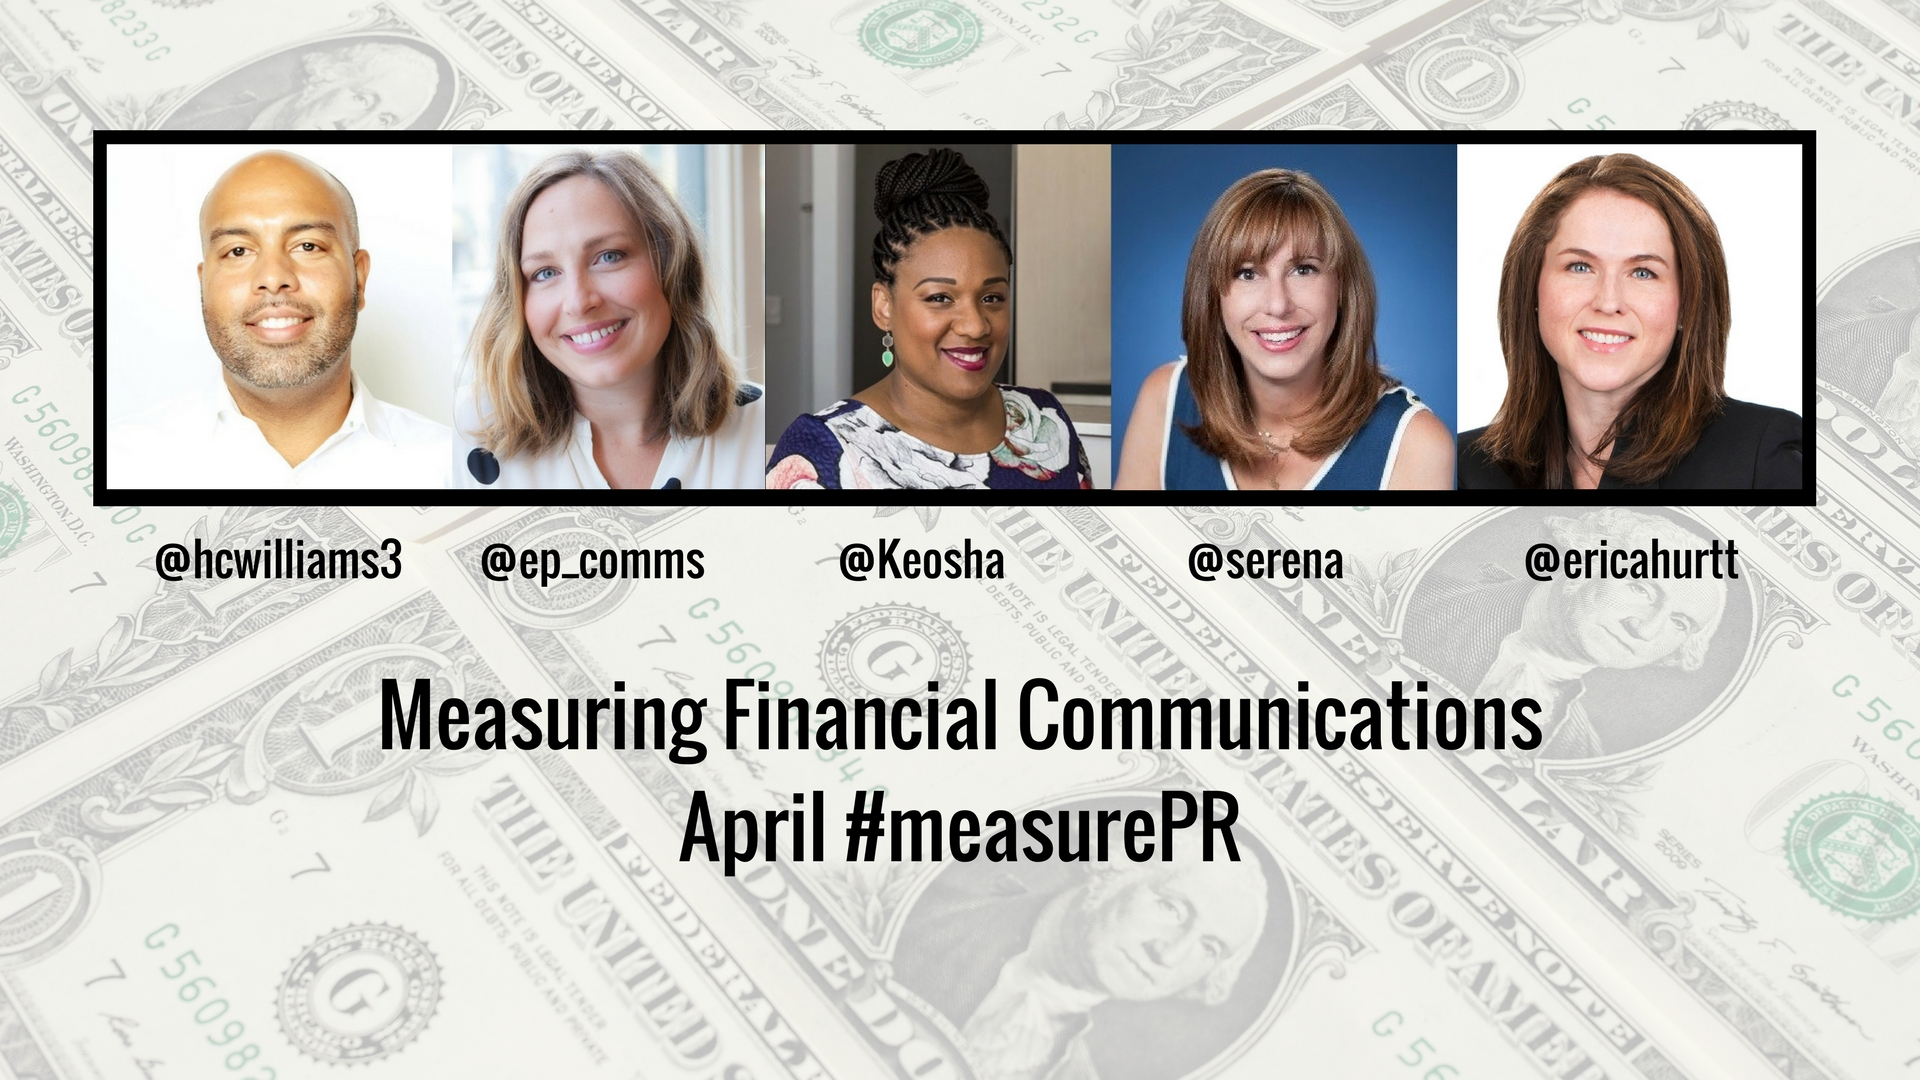 measuring financial communications